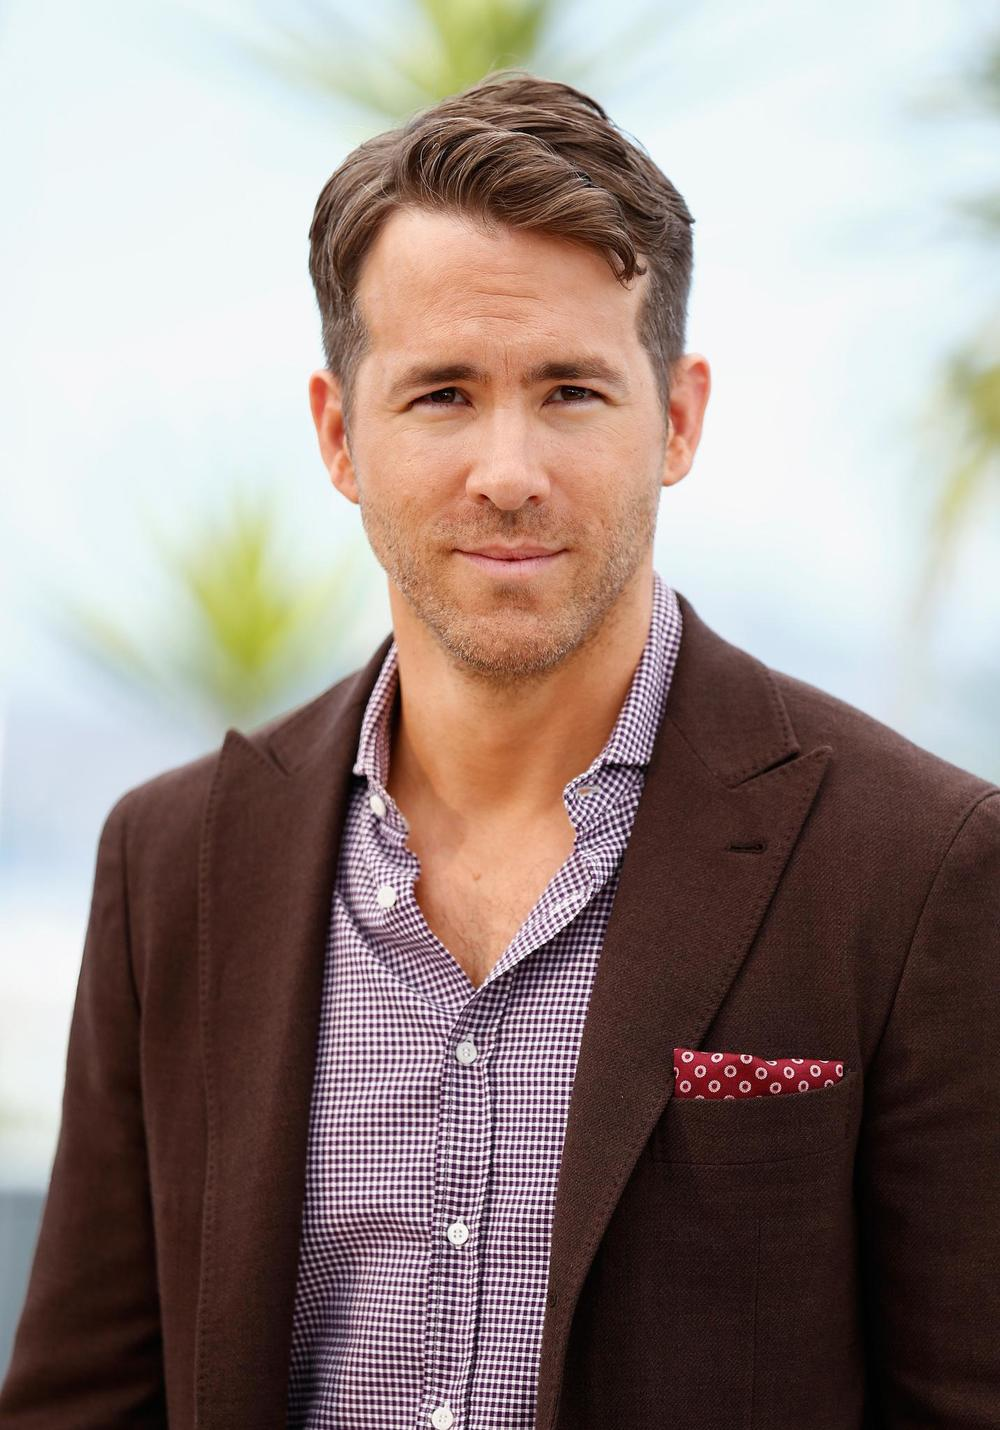 ryan-reynolds-at-event-of-the-captive-(2014)-large-picture.jpg